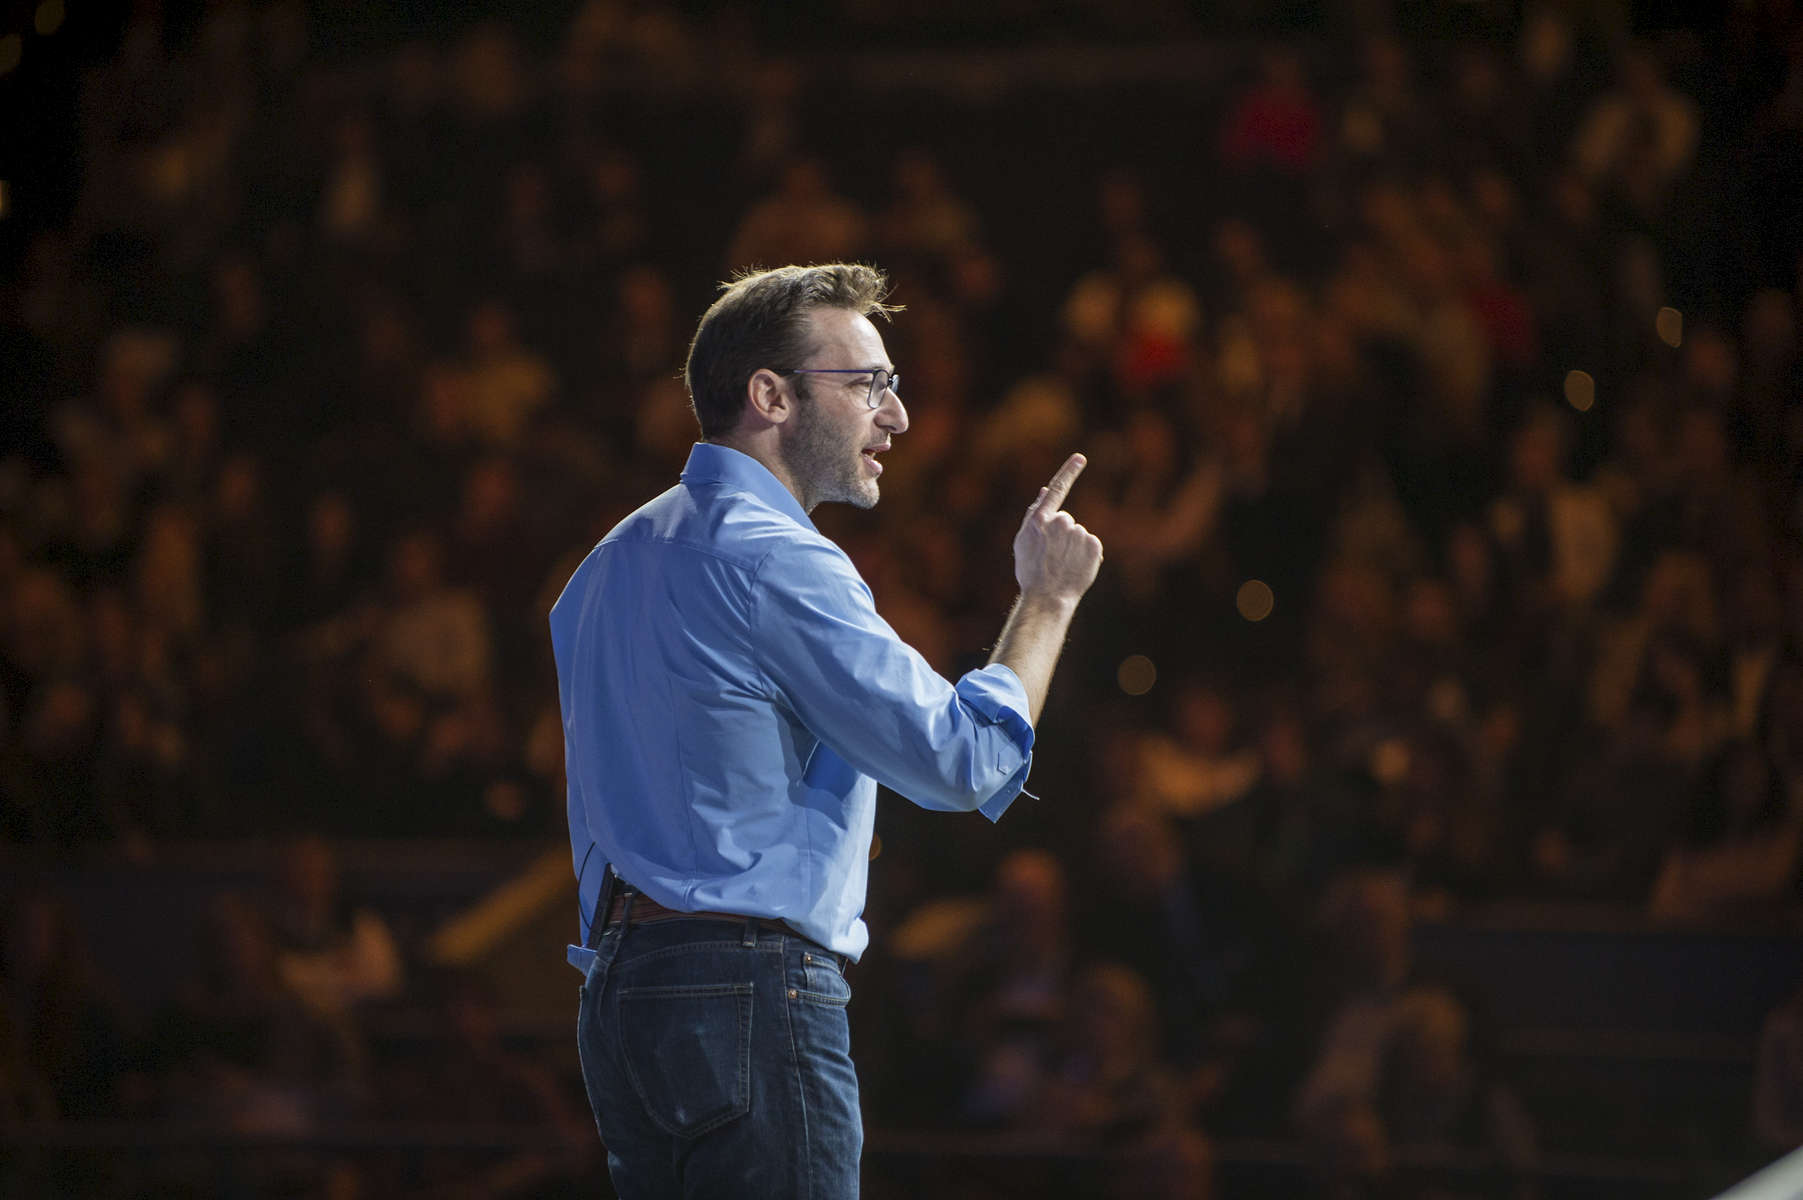 Simon Sinek is speaking at the Synergy Global Forum NY at The Theater at Madison Square Garden October 28, 2017. Photo by Ron Wyatt Photography